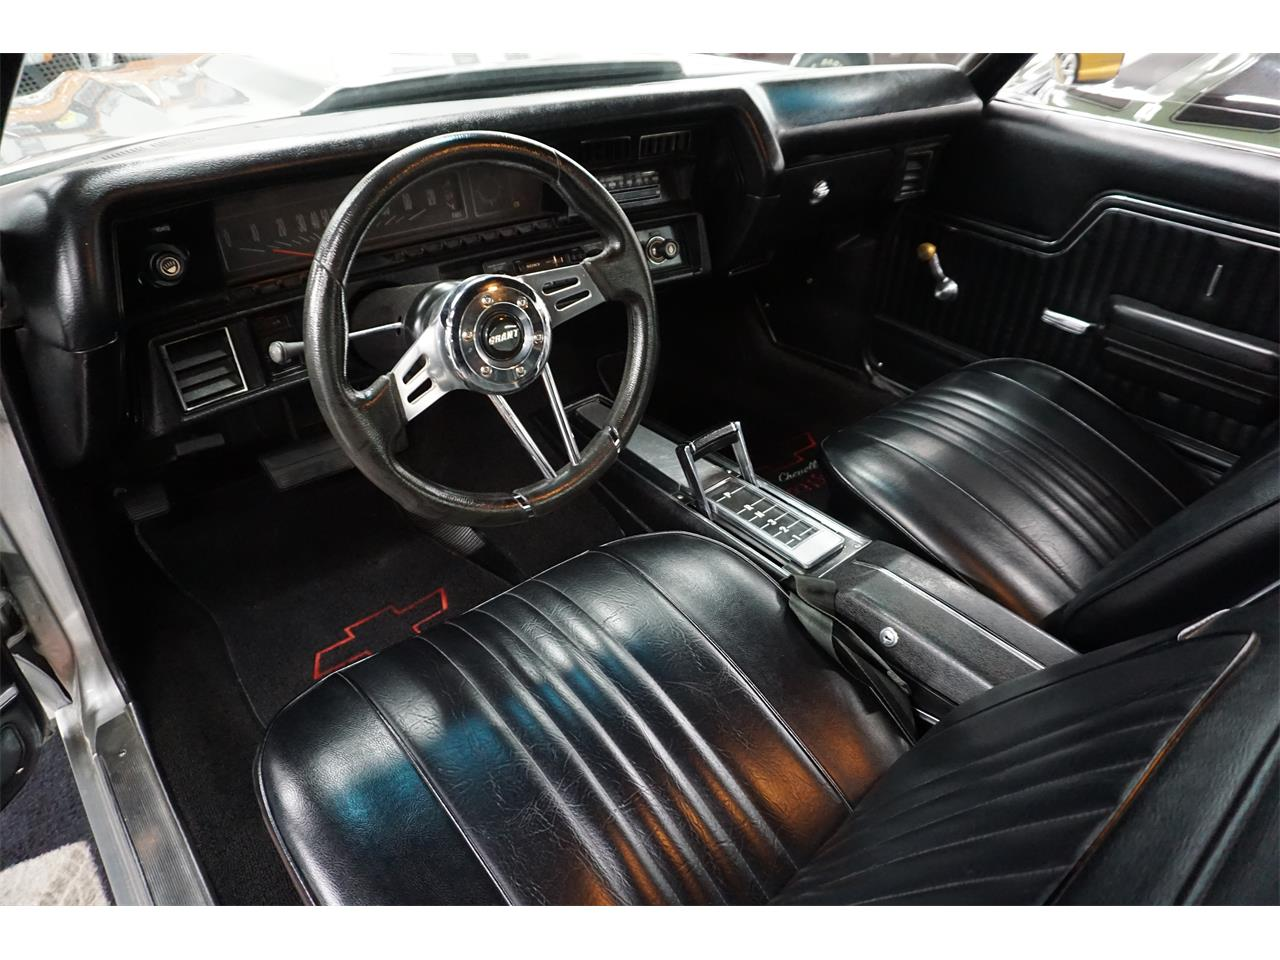 Large Picture of 1972 Chevrolet Chevelle - $24,900.00 - Q65X